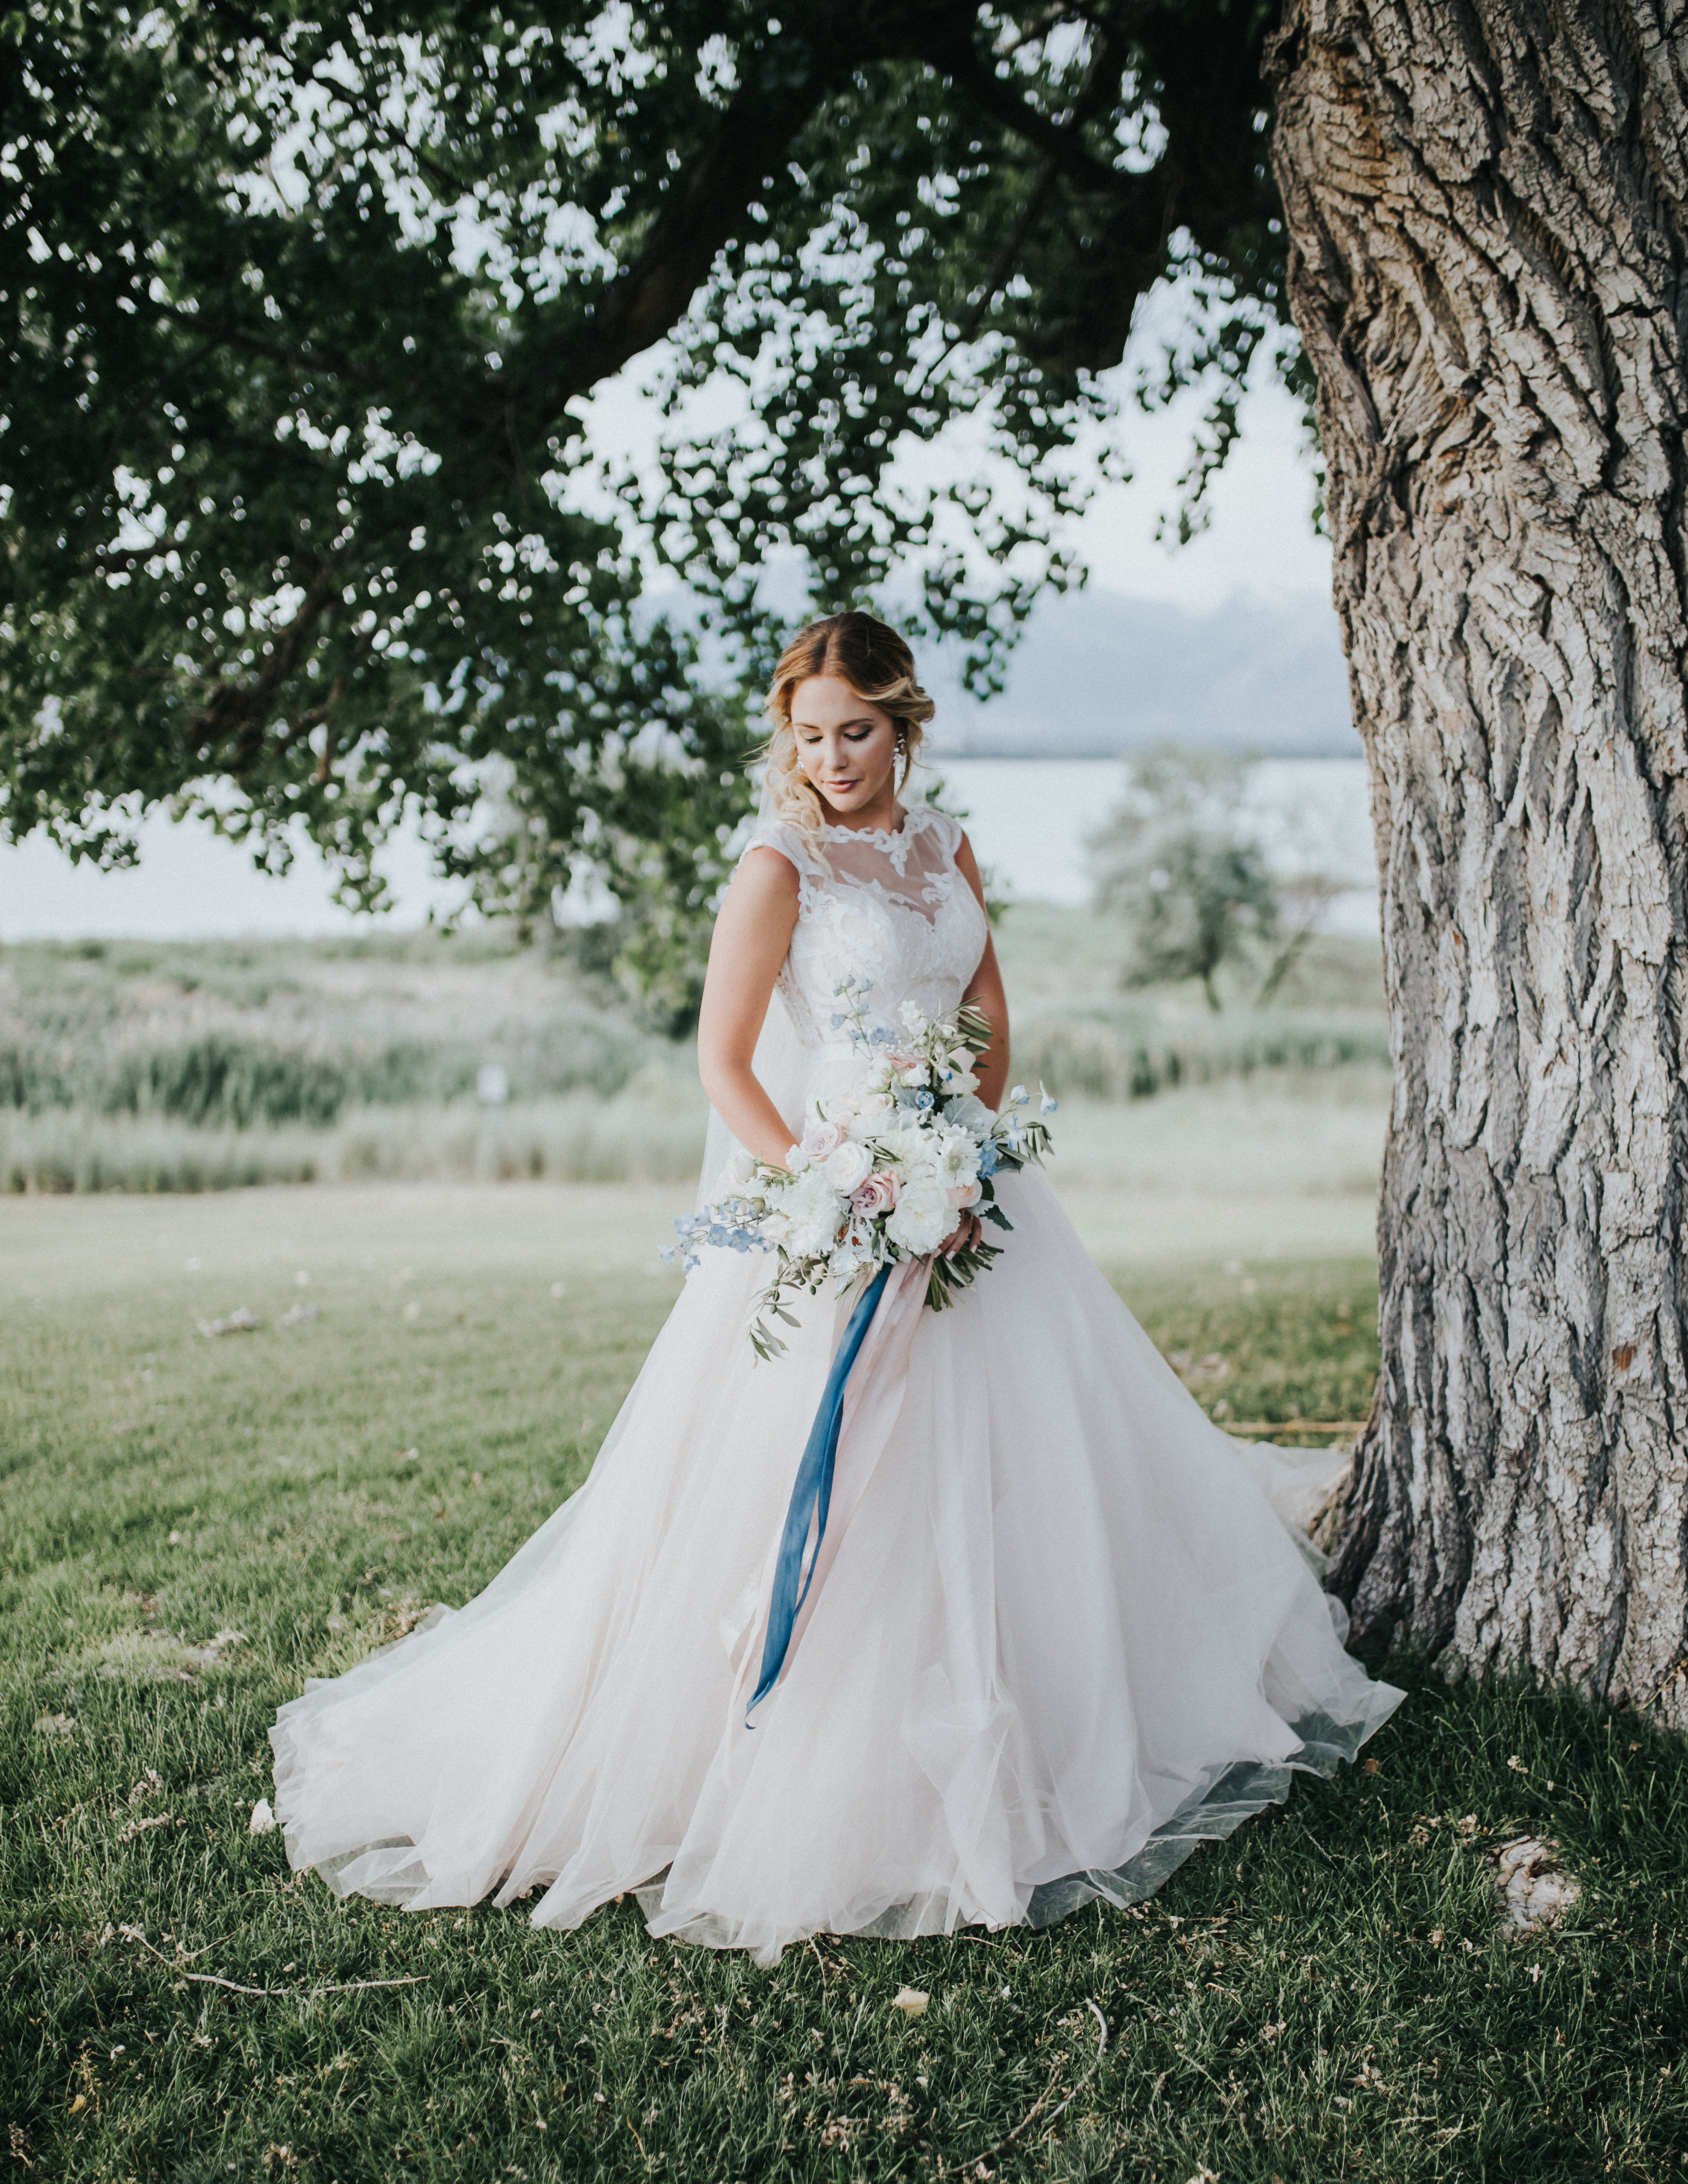 Rebecca Ingram Wedding Dress - Styled Shoot